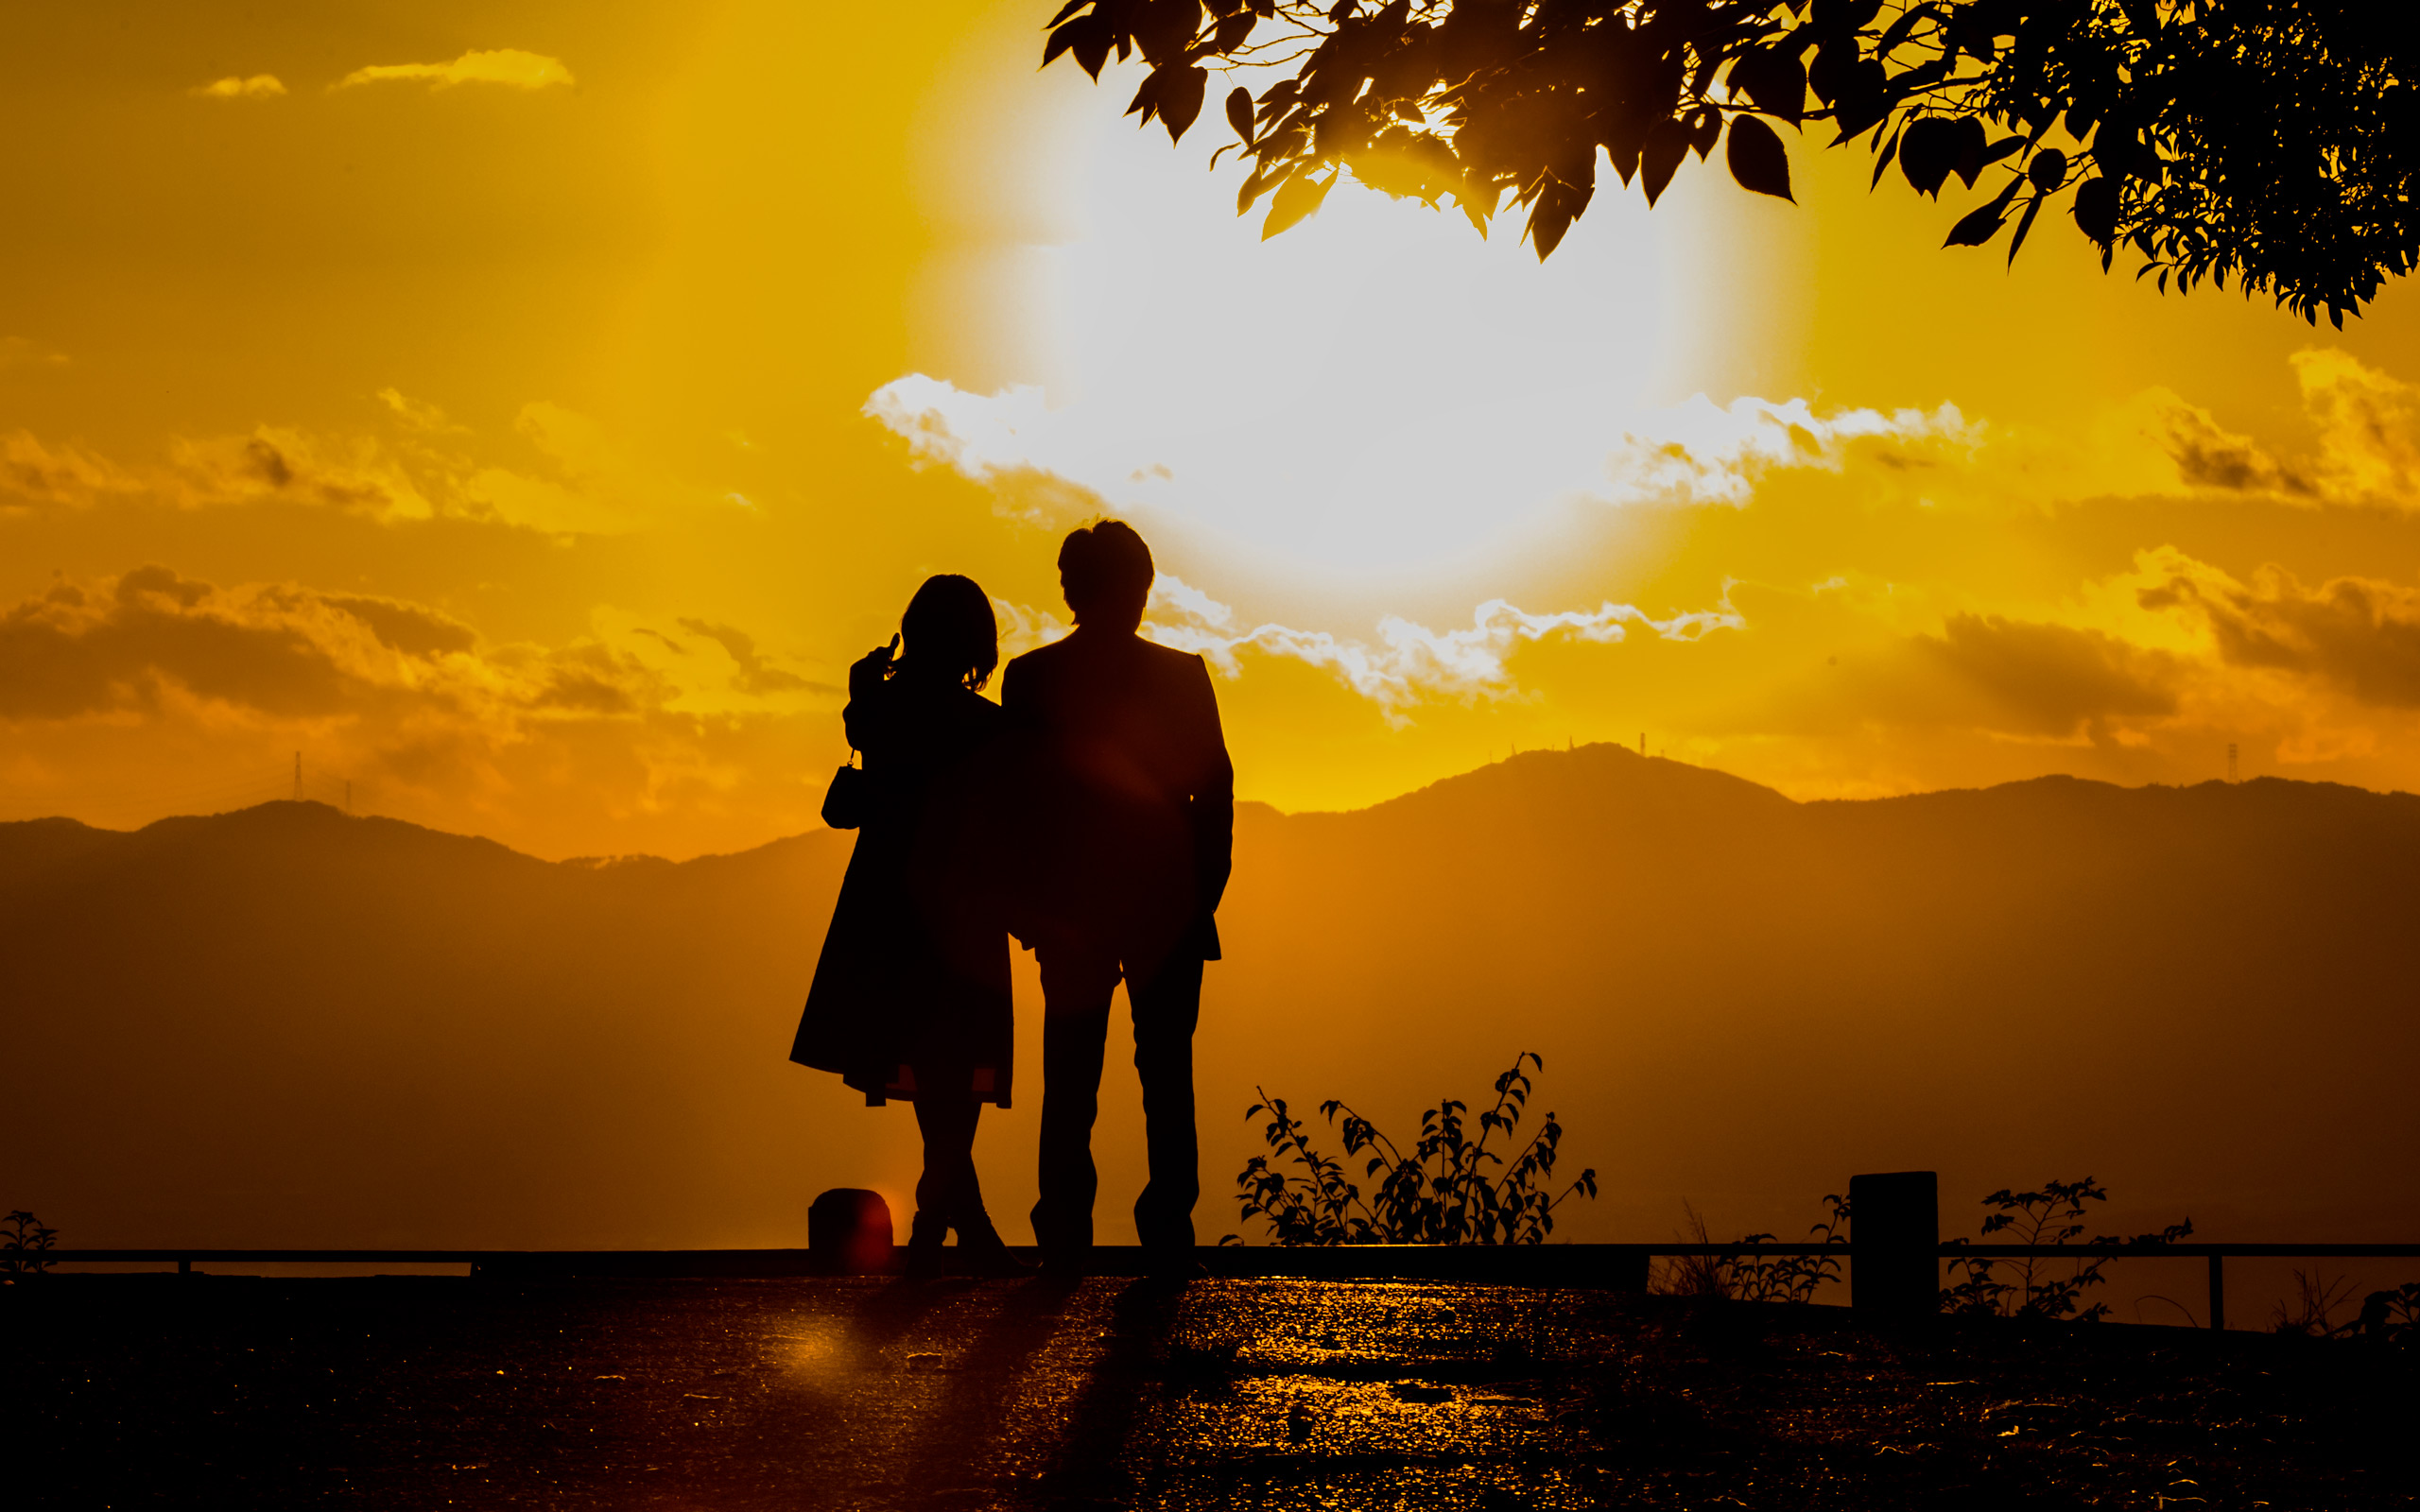 Childhood Friends Quotes Wallpaper Jeffrey Friedl S Blog 187 The Hope Imbued In A Dull Sunset